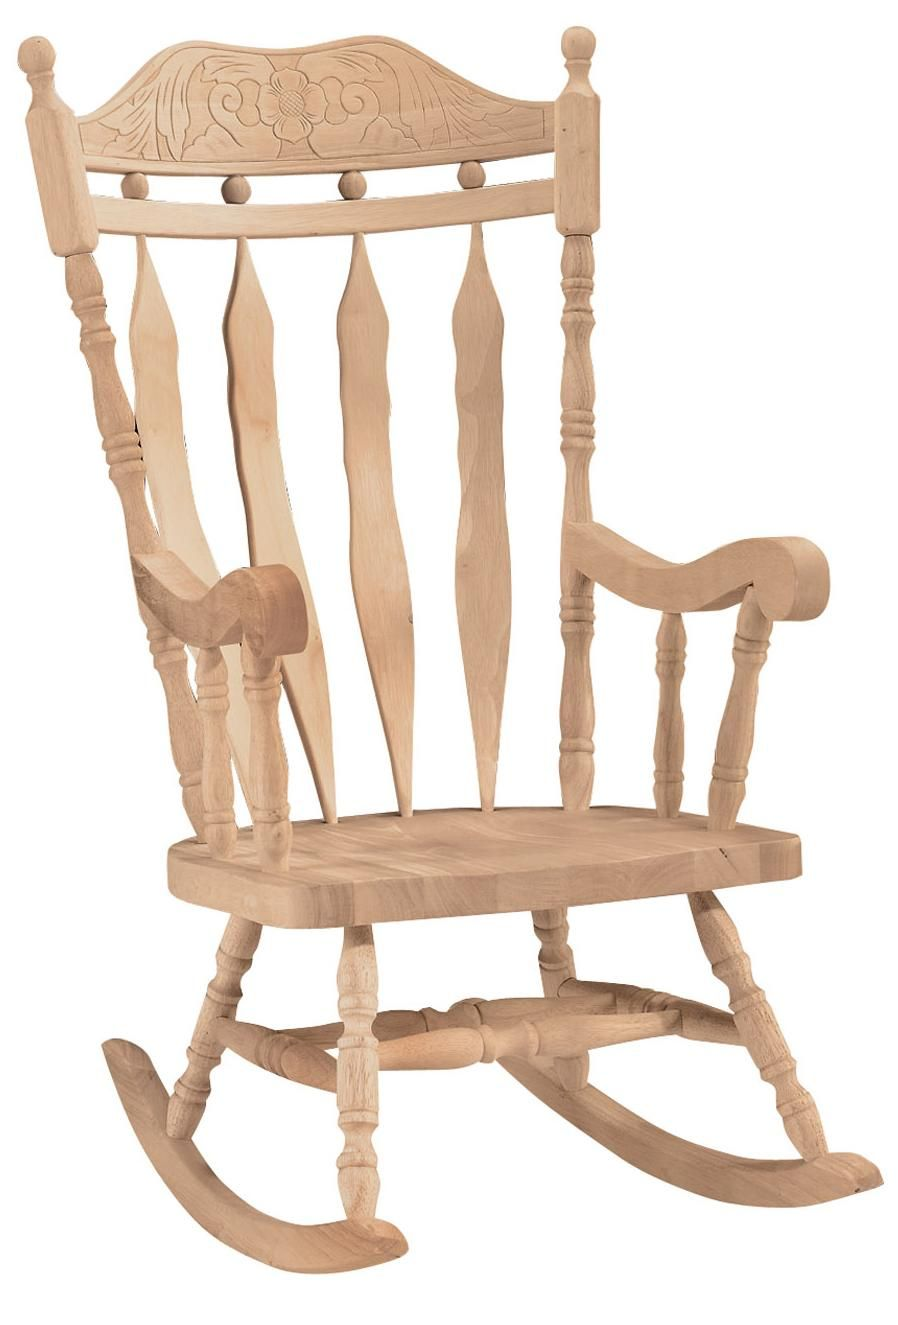 Charmant Carved Back Rocker Available At Rowan Oaks Furniture And Painting  #rowanoaksfurniture